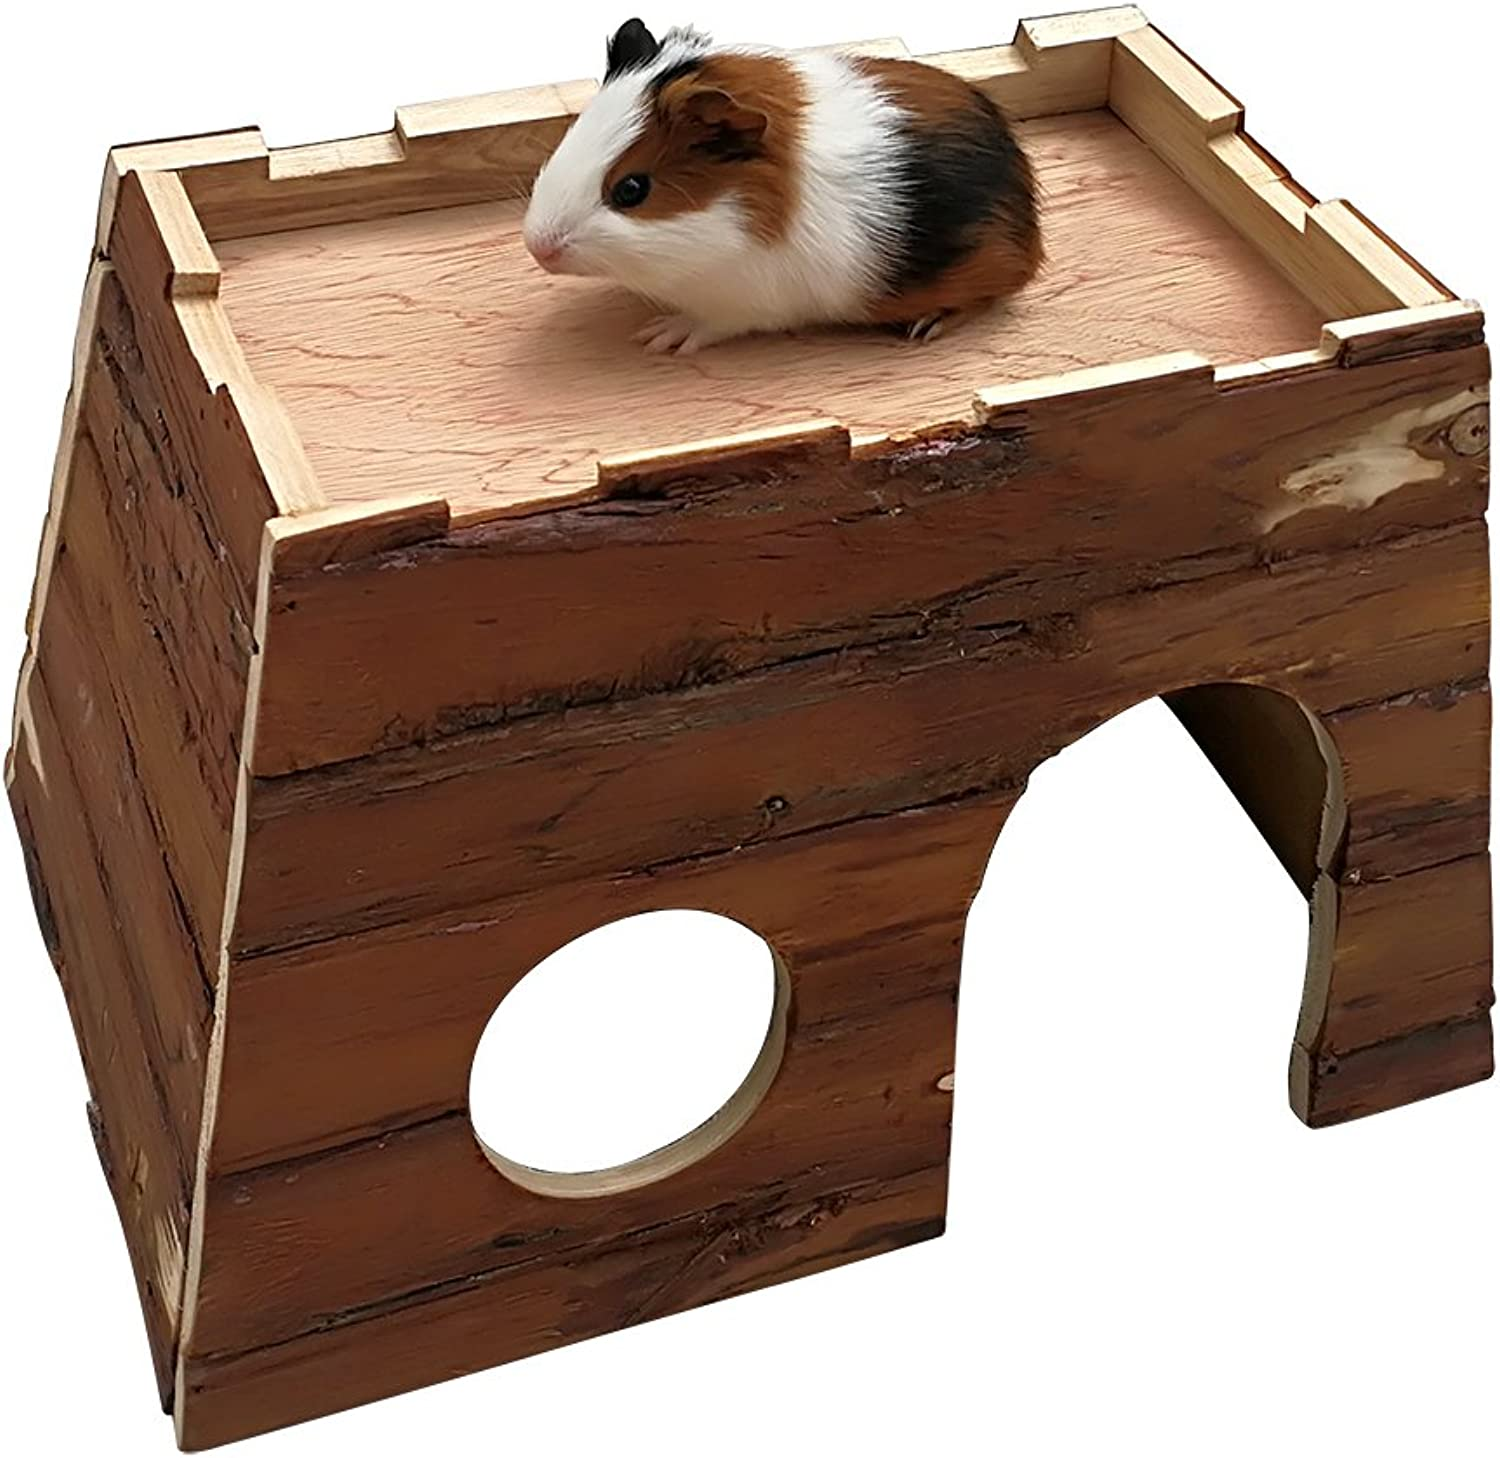 B&P Hamster Castle Wooden House